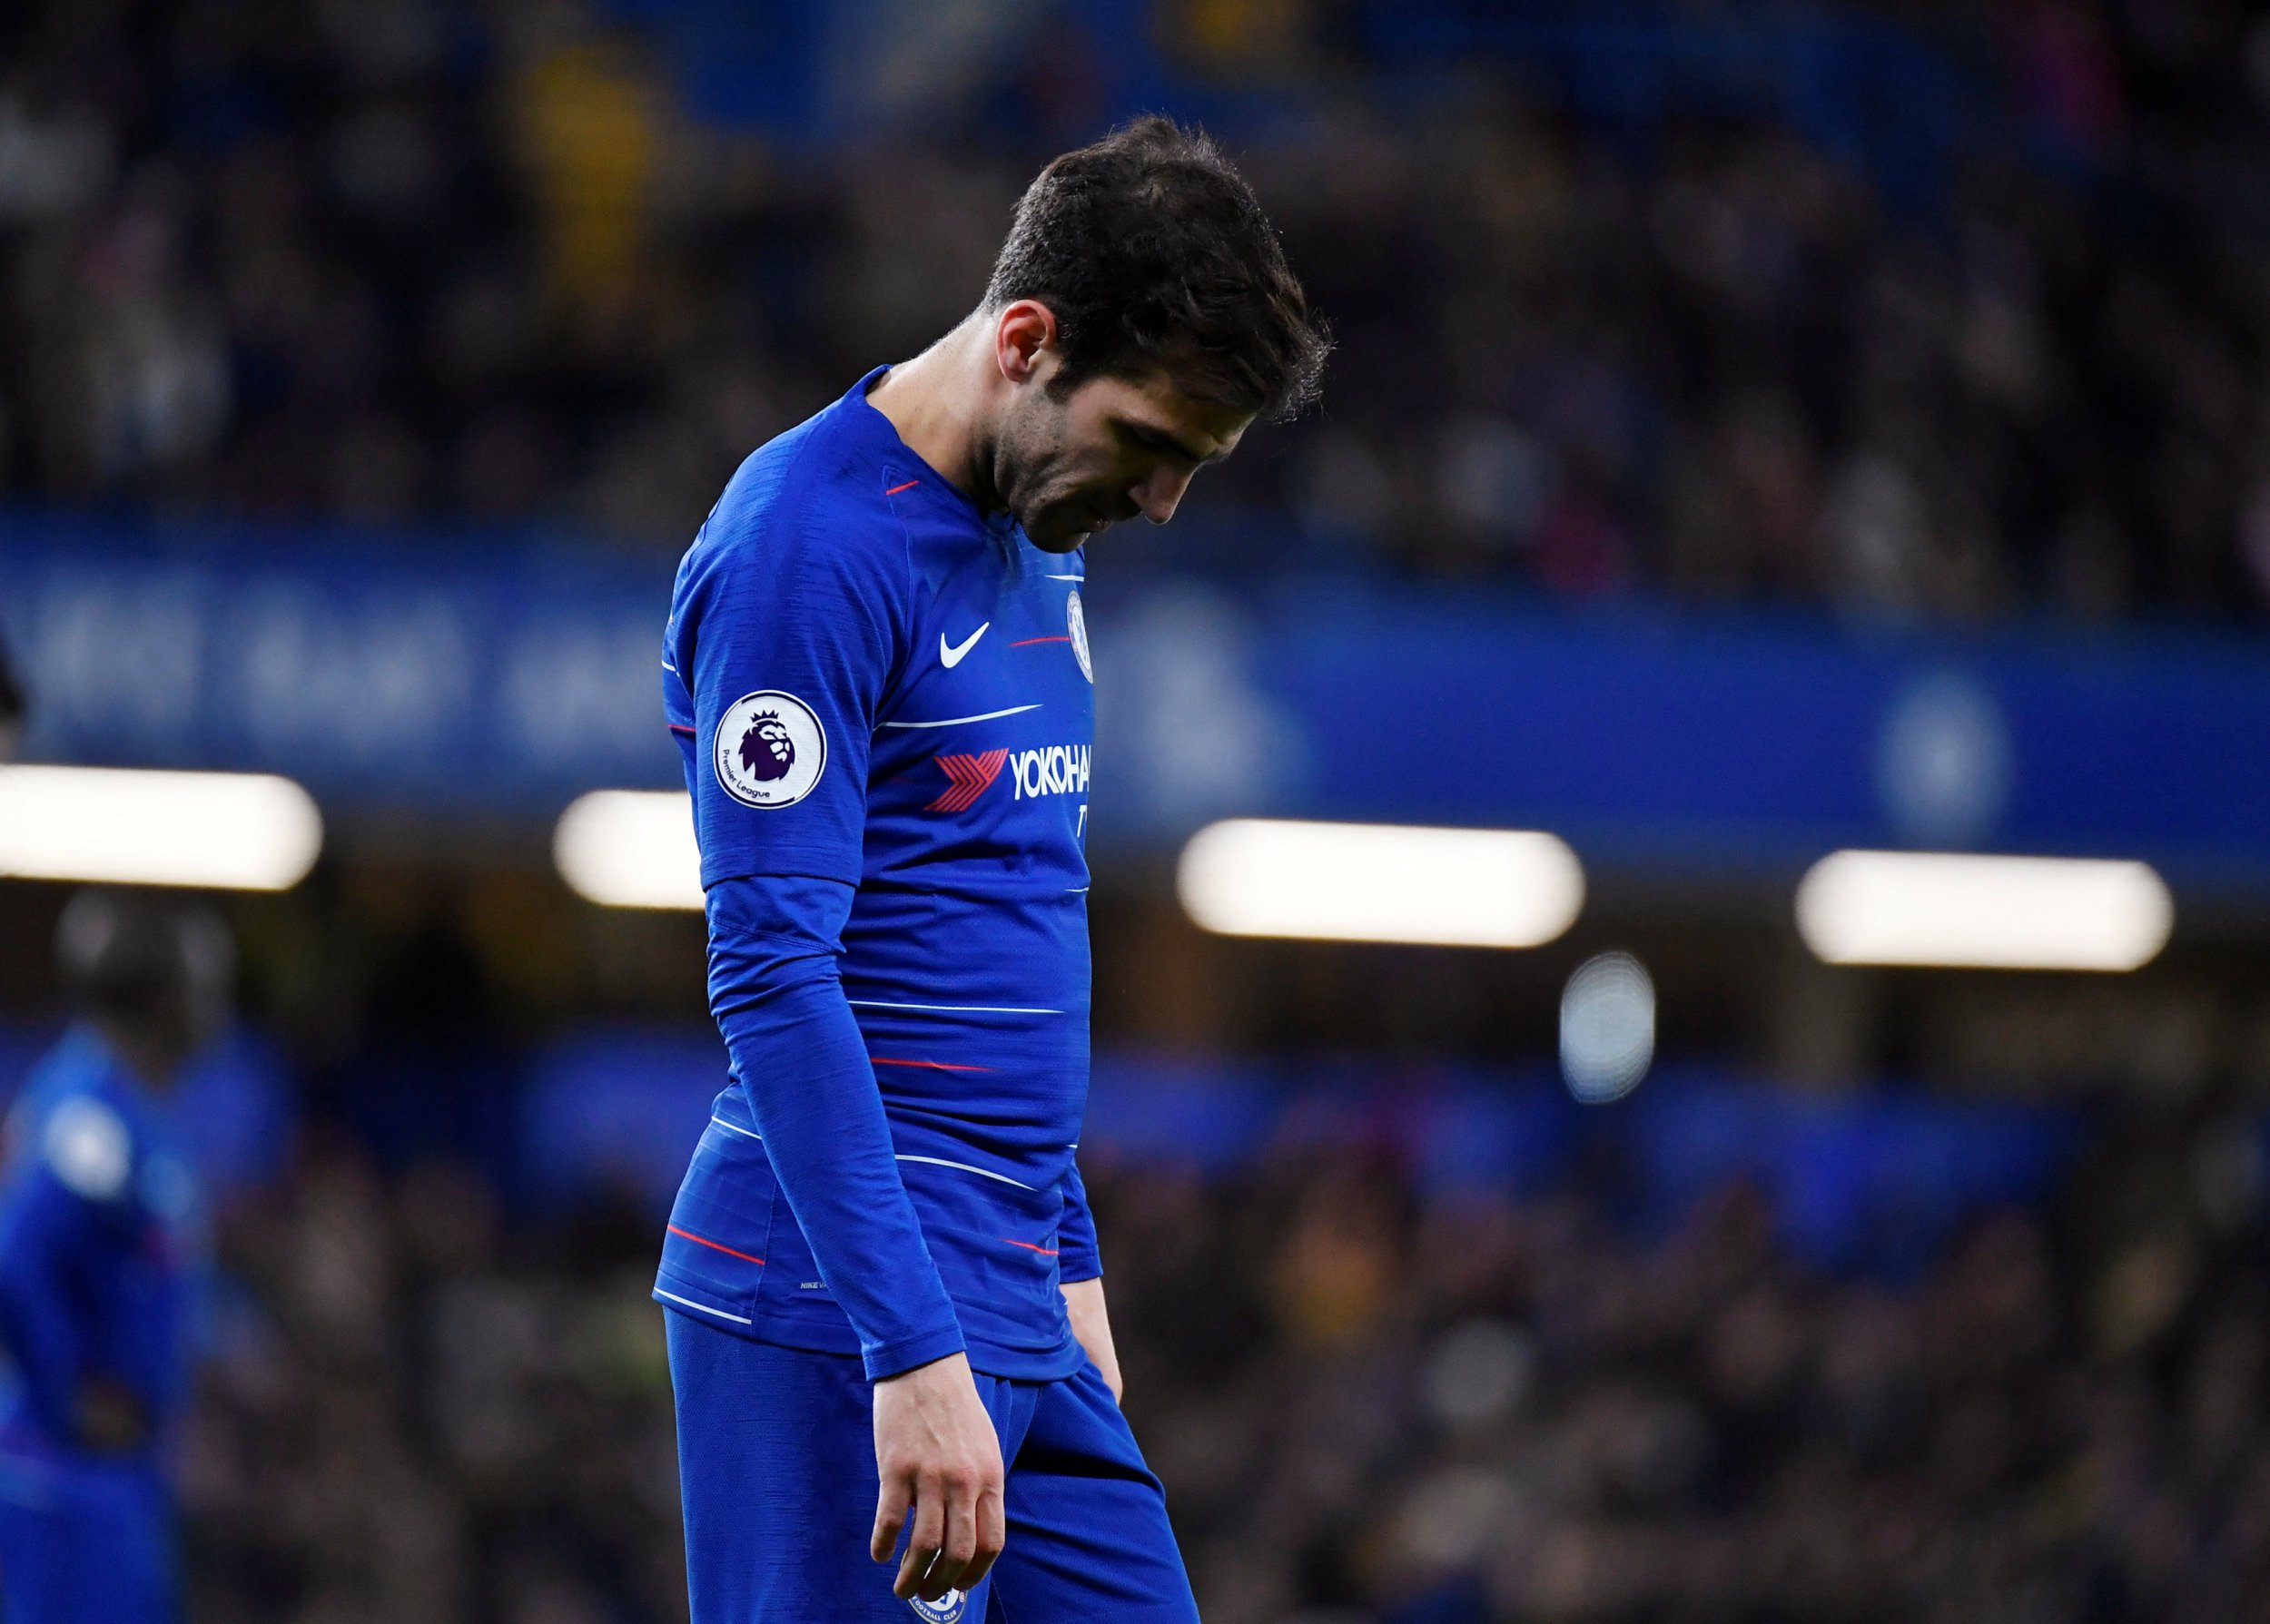 Waving goodbye? Cesc Fabregas appears to bid farewell to Chelsea fans after milestone appearance